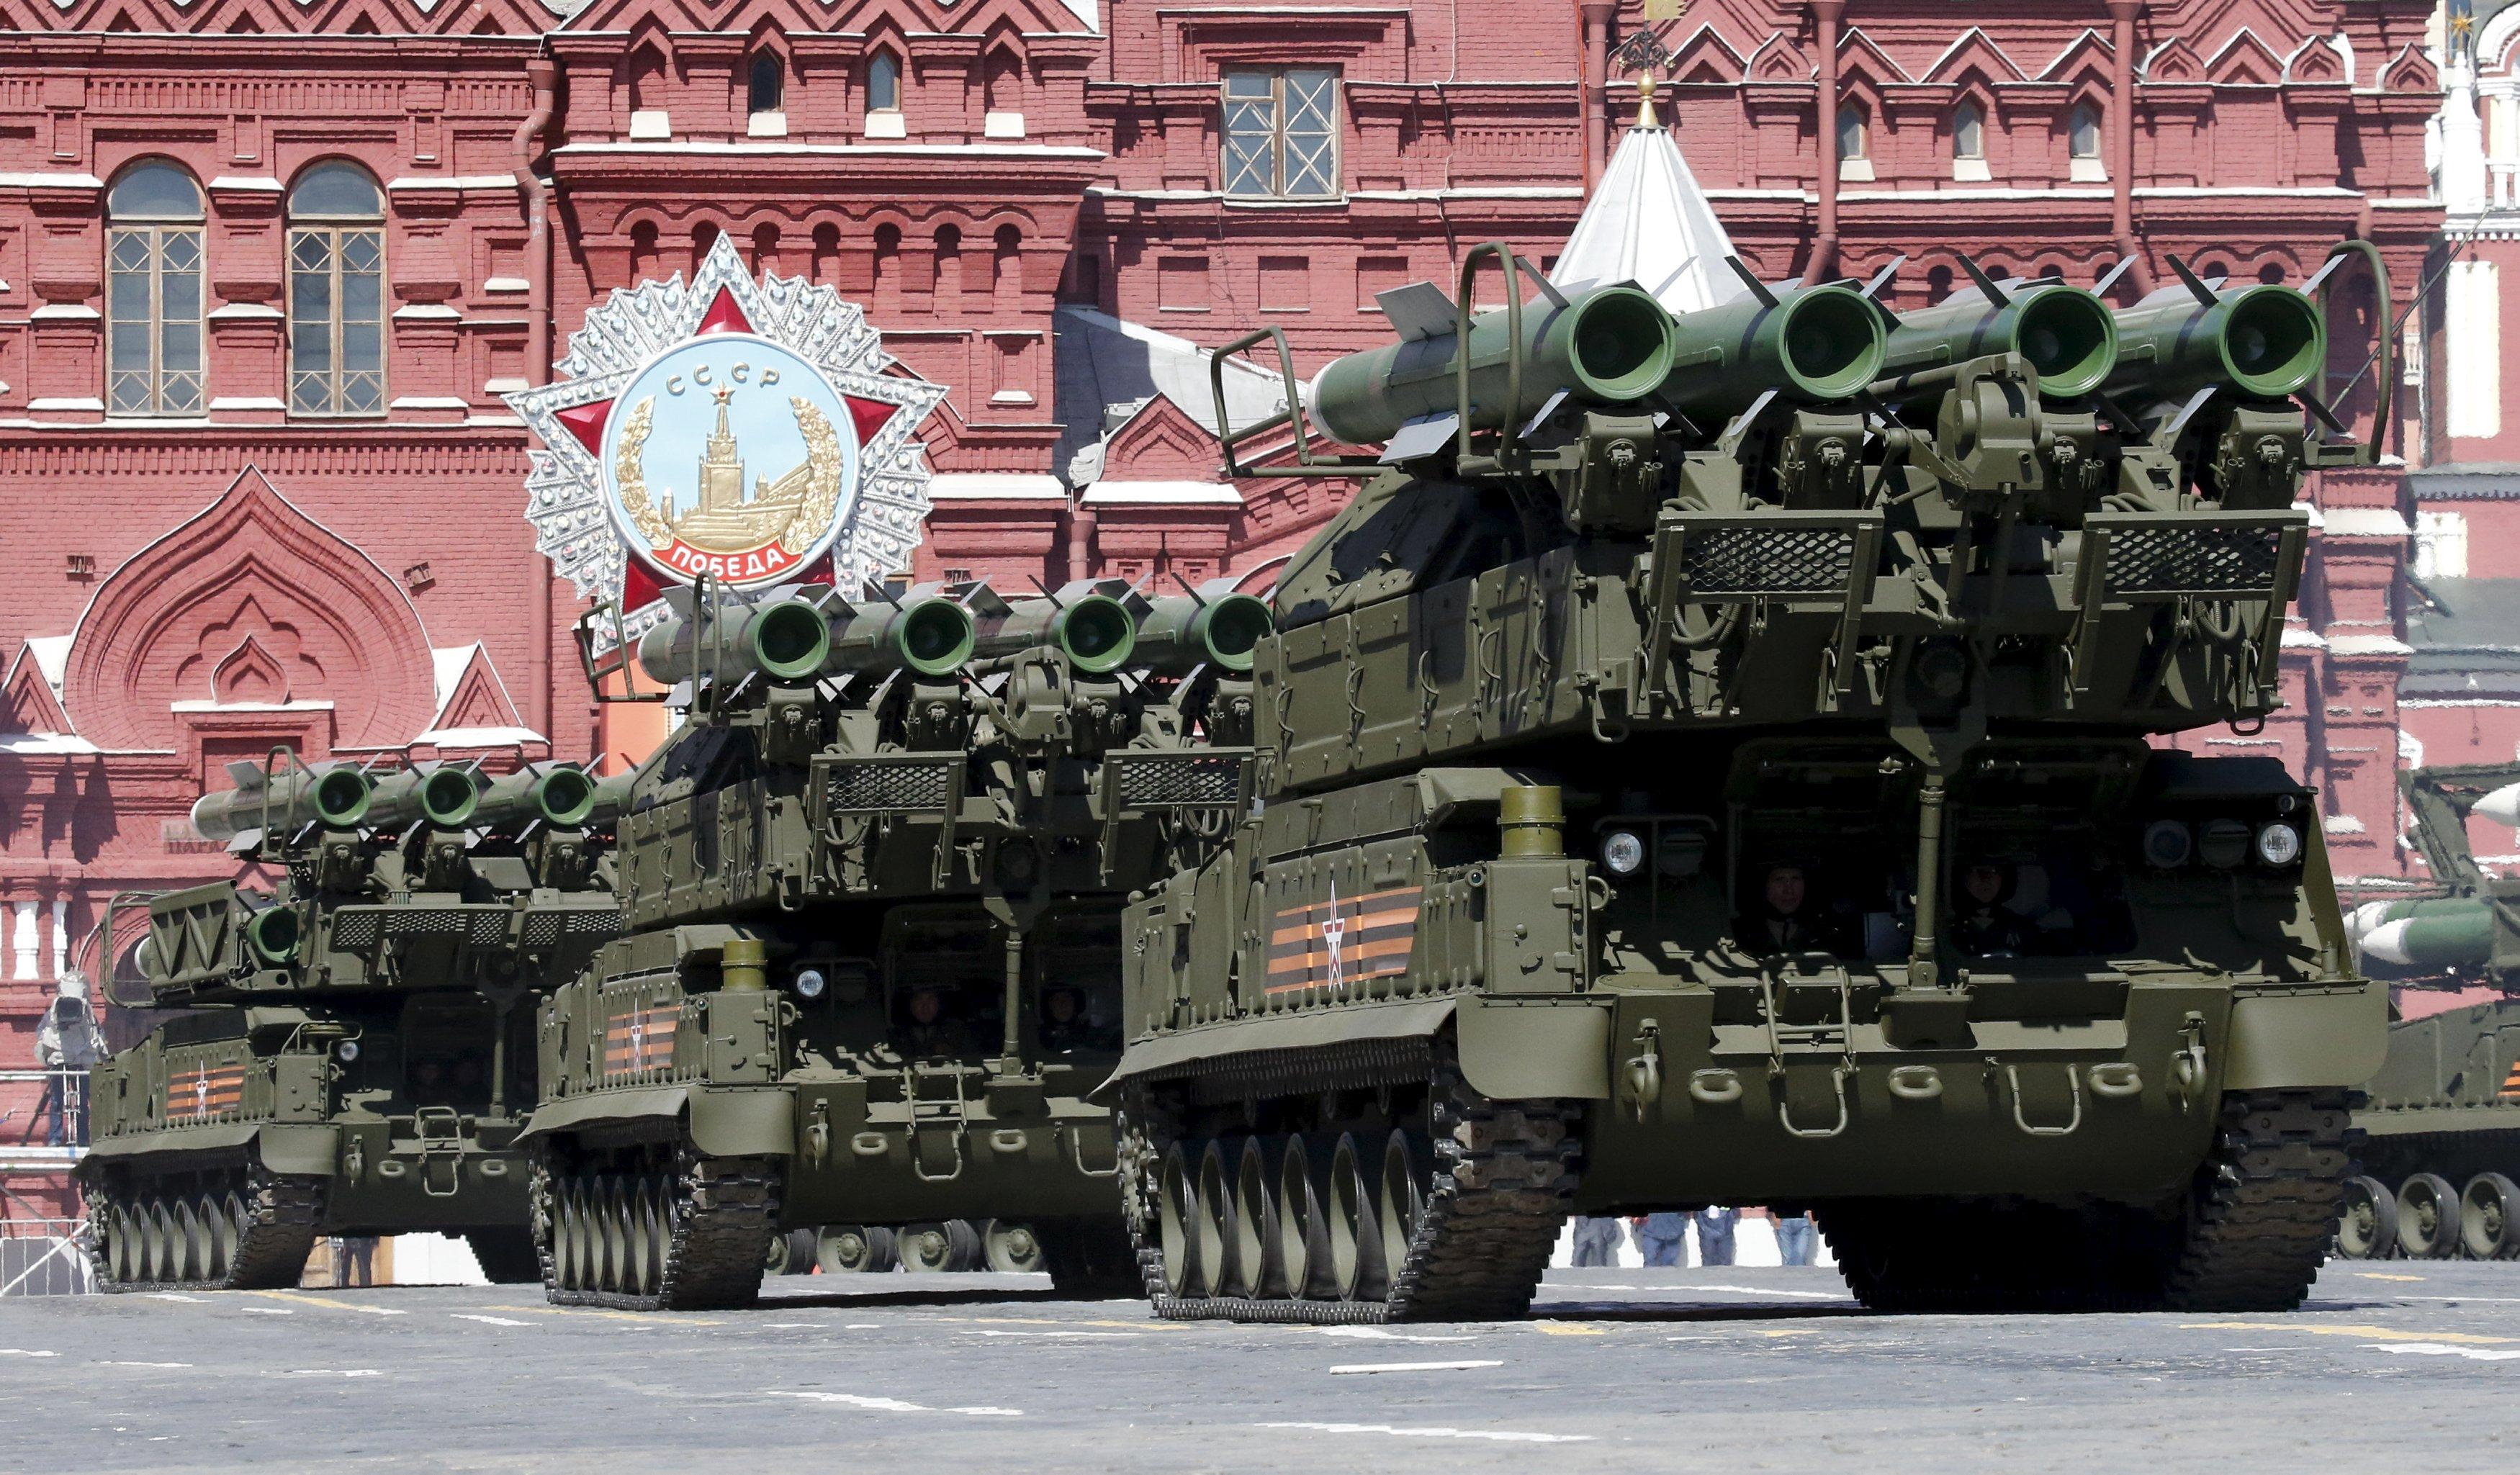 The Buk is reported to be the same missile system that show down MH17